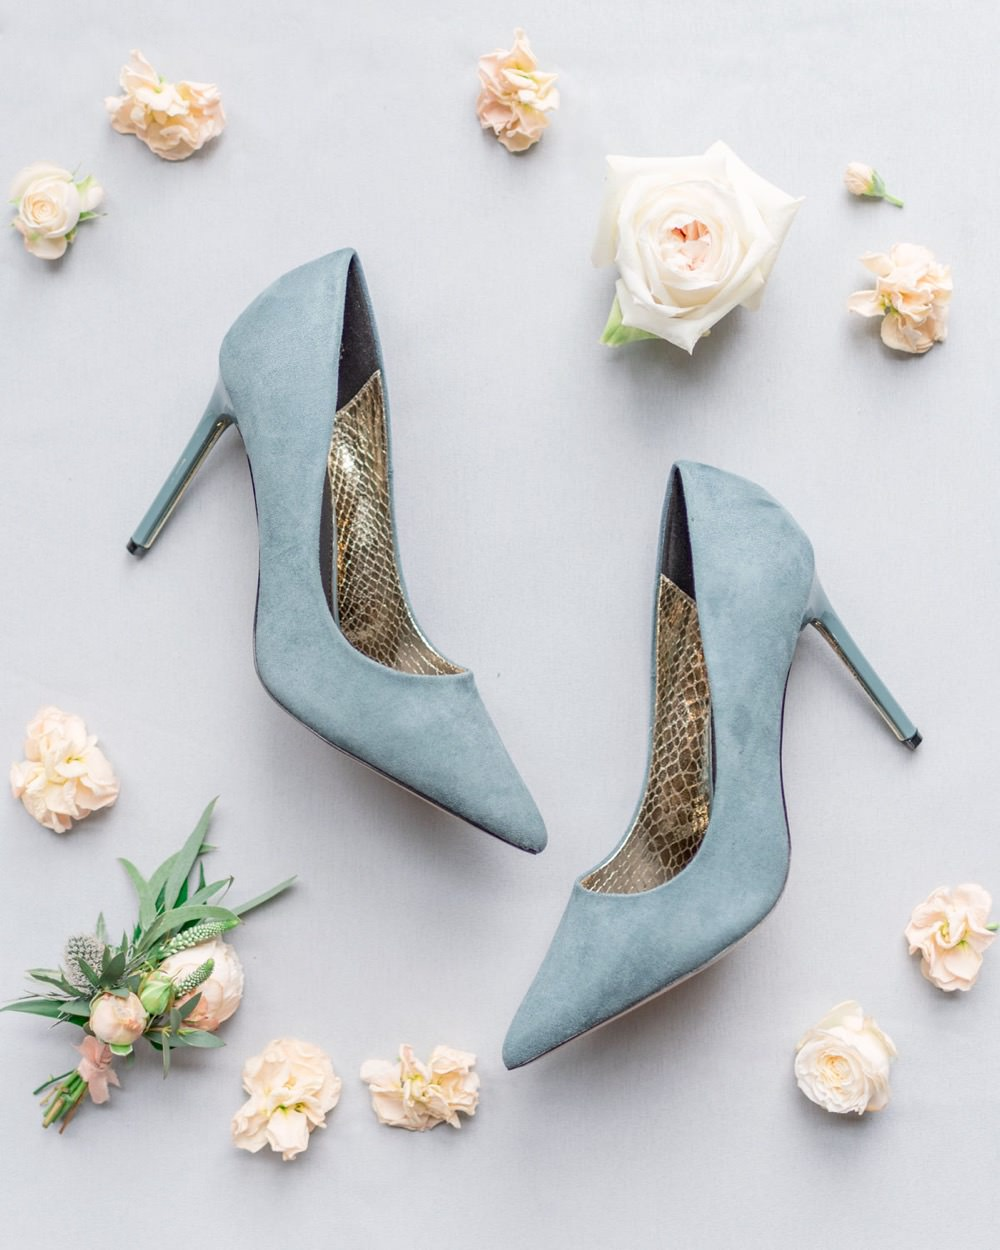 Blue Shoes Bride Bridal Elegant Wedding Ideas Yll Weddings